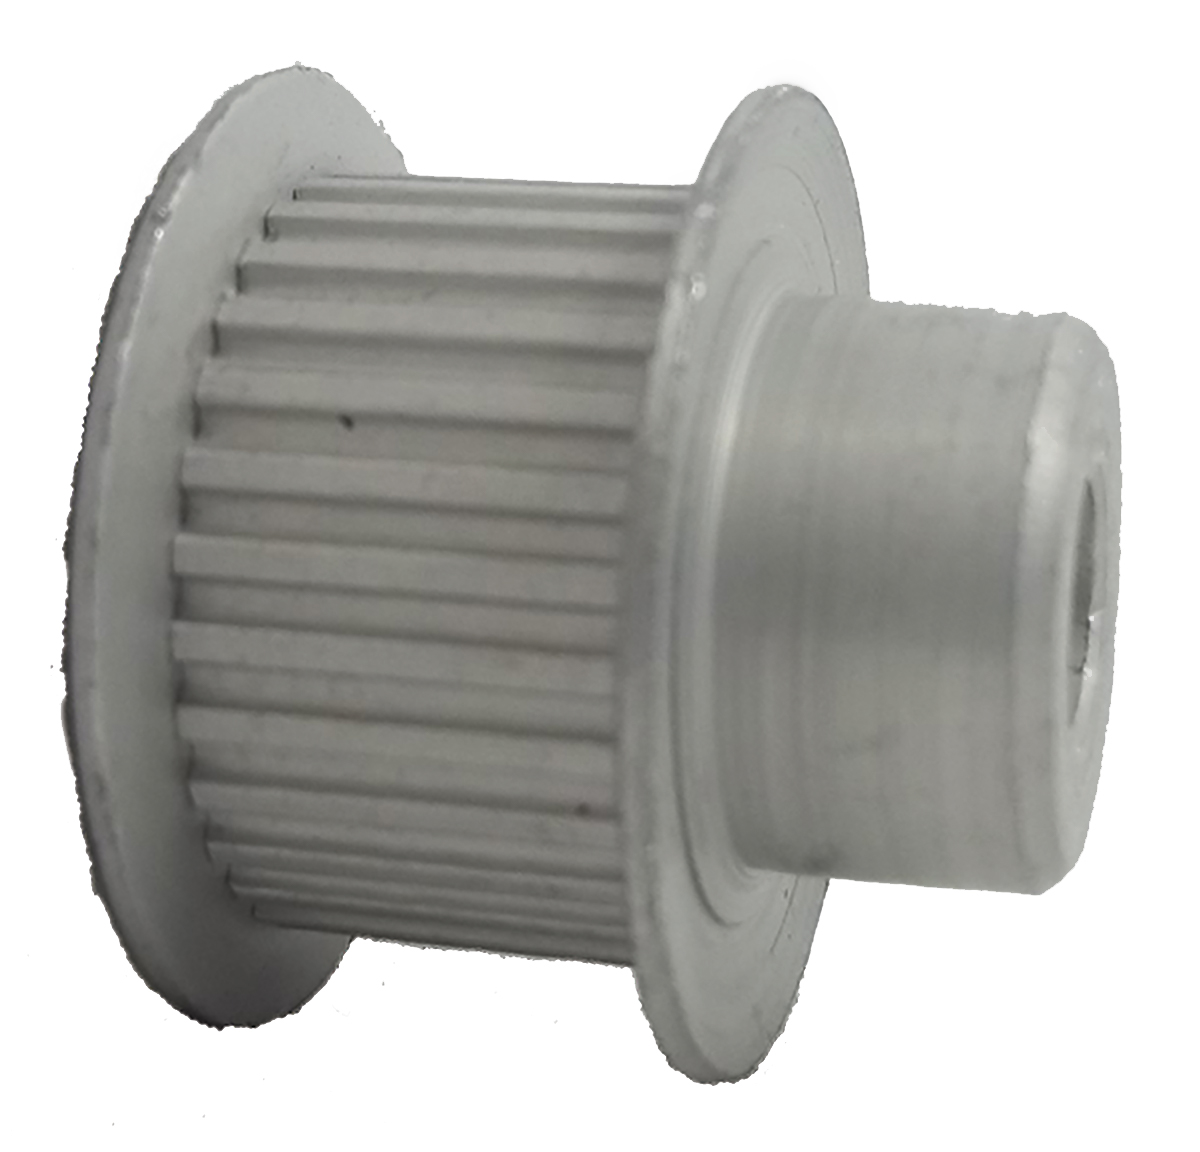 32MP037-6FA3 - Aluminum Imperial Pitch Pulleys